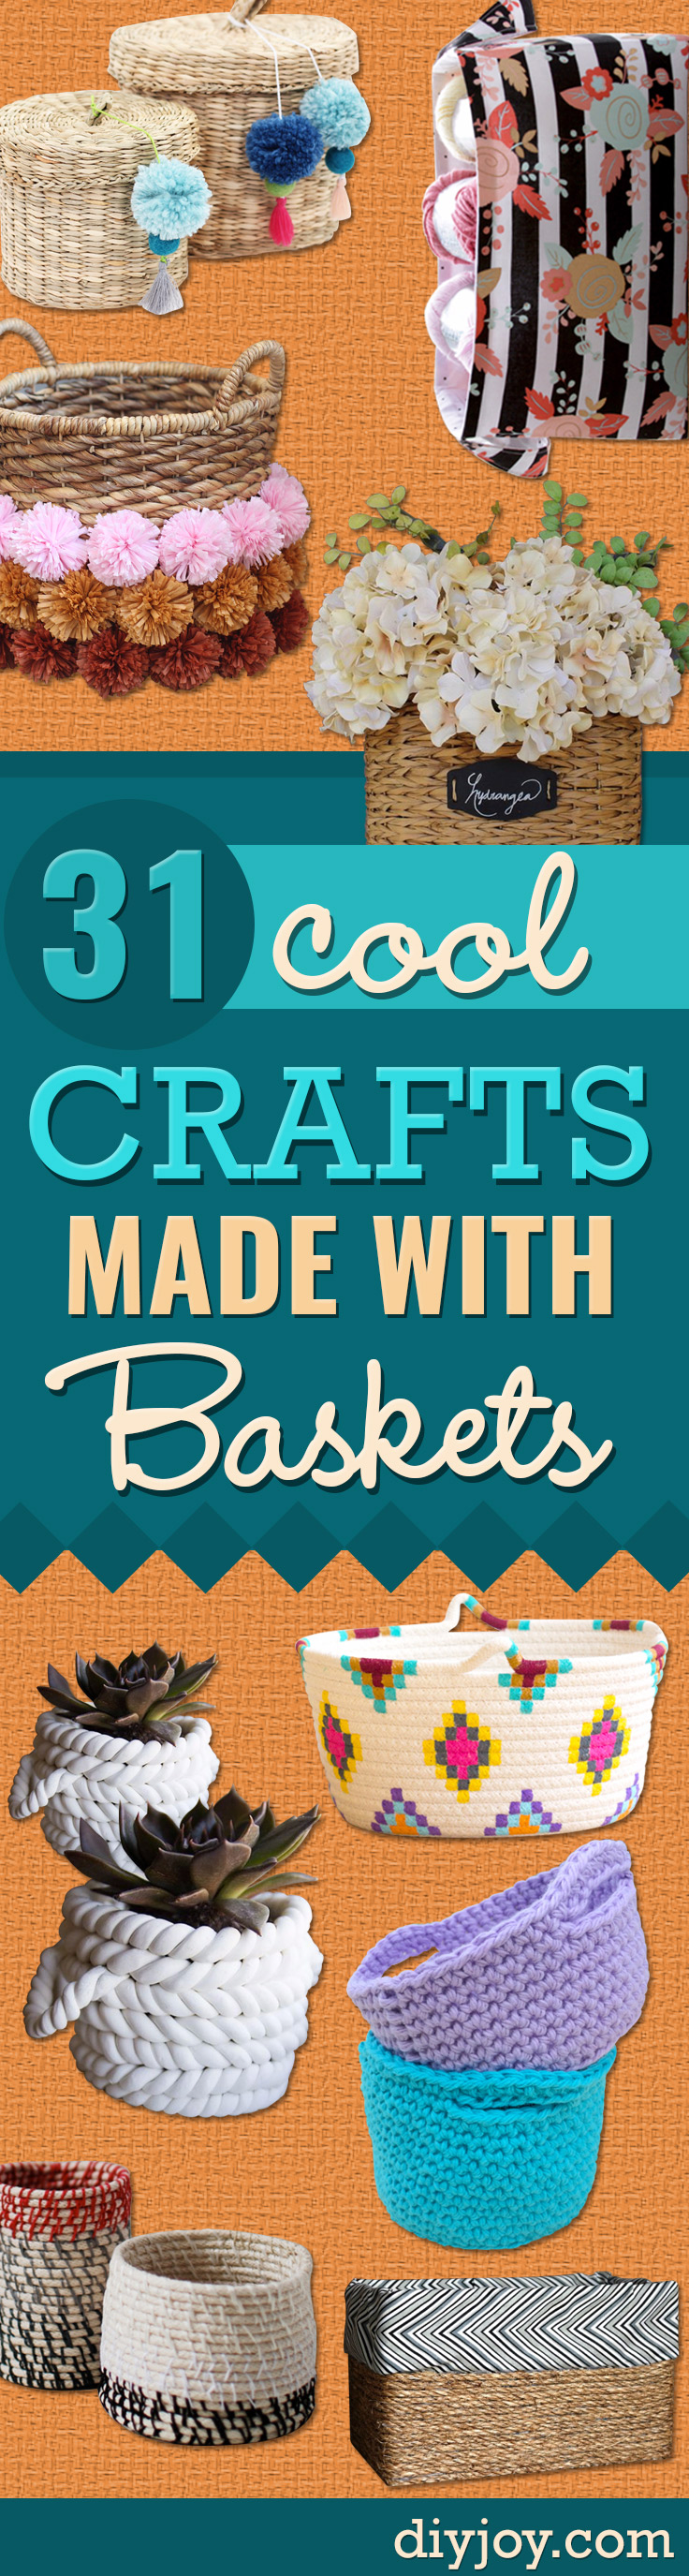 Creative Crafts Made With Baskets - DIY Storage and Organizing Ideas, Gift Basket Ideas, Best DIY Christmas Presents and Holiday Gifts, Room and Home Decor with Step by Step Tutorials - Easy DIY Ideas and Dollar Store Crafts http://diyjoy.com/diy-basket-crafts